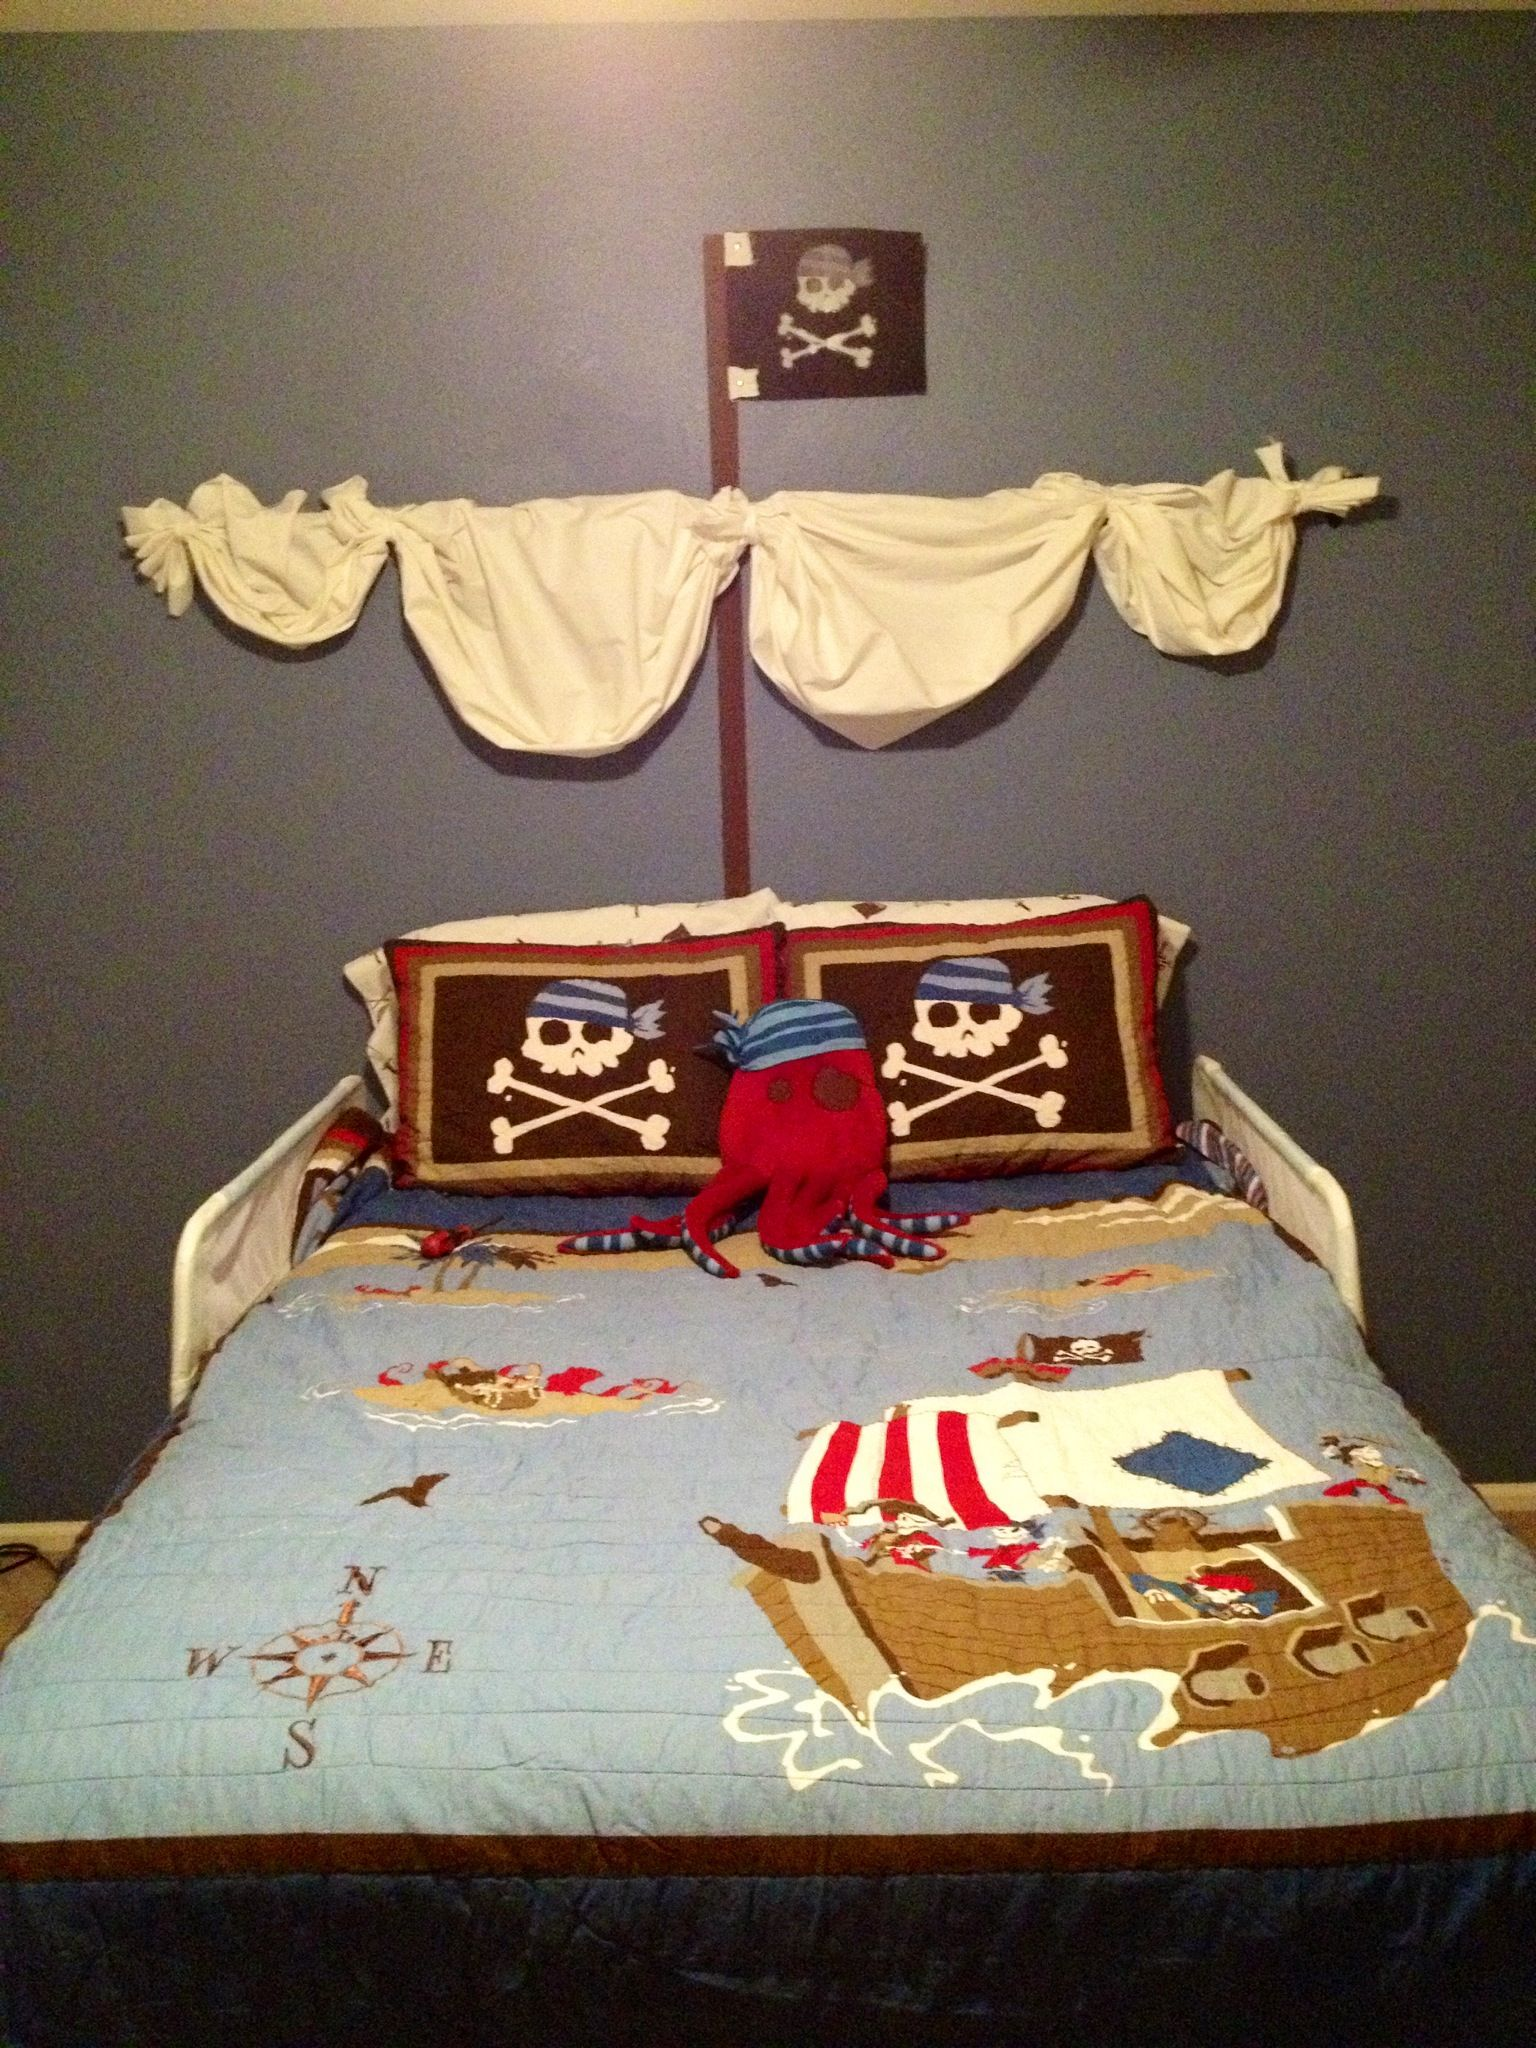 Pirate Accessories For Bedroom Pirate Ship Headboardperfect For A Peter Pan Bedroom